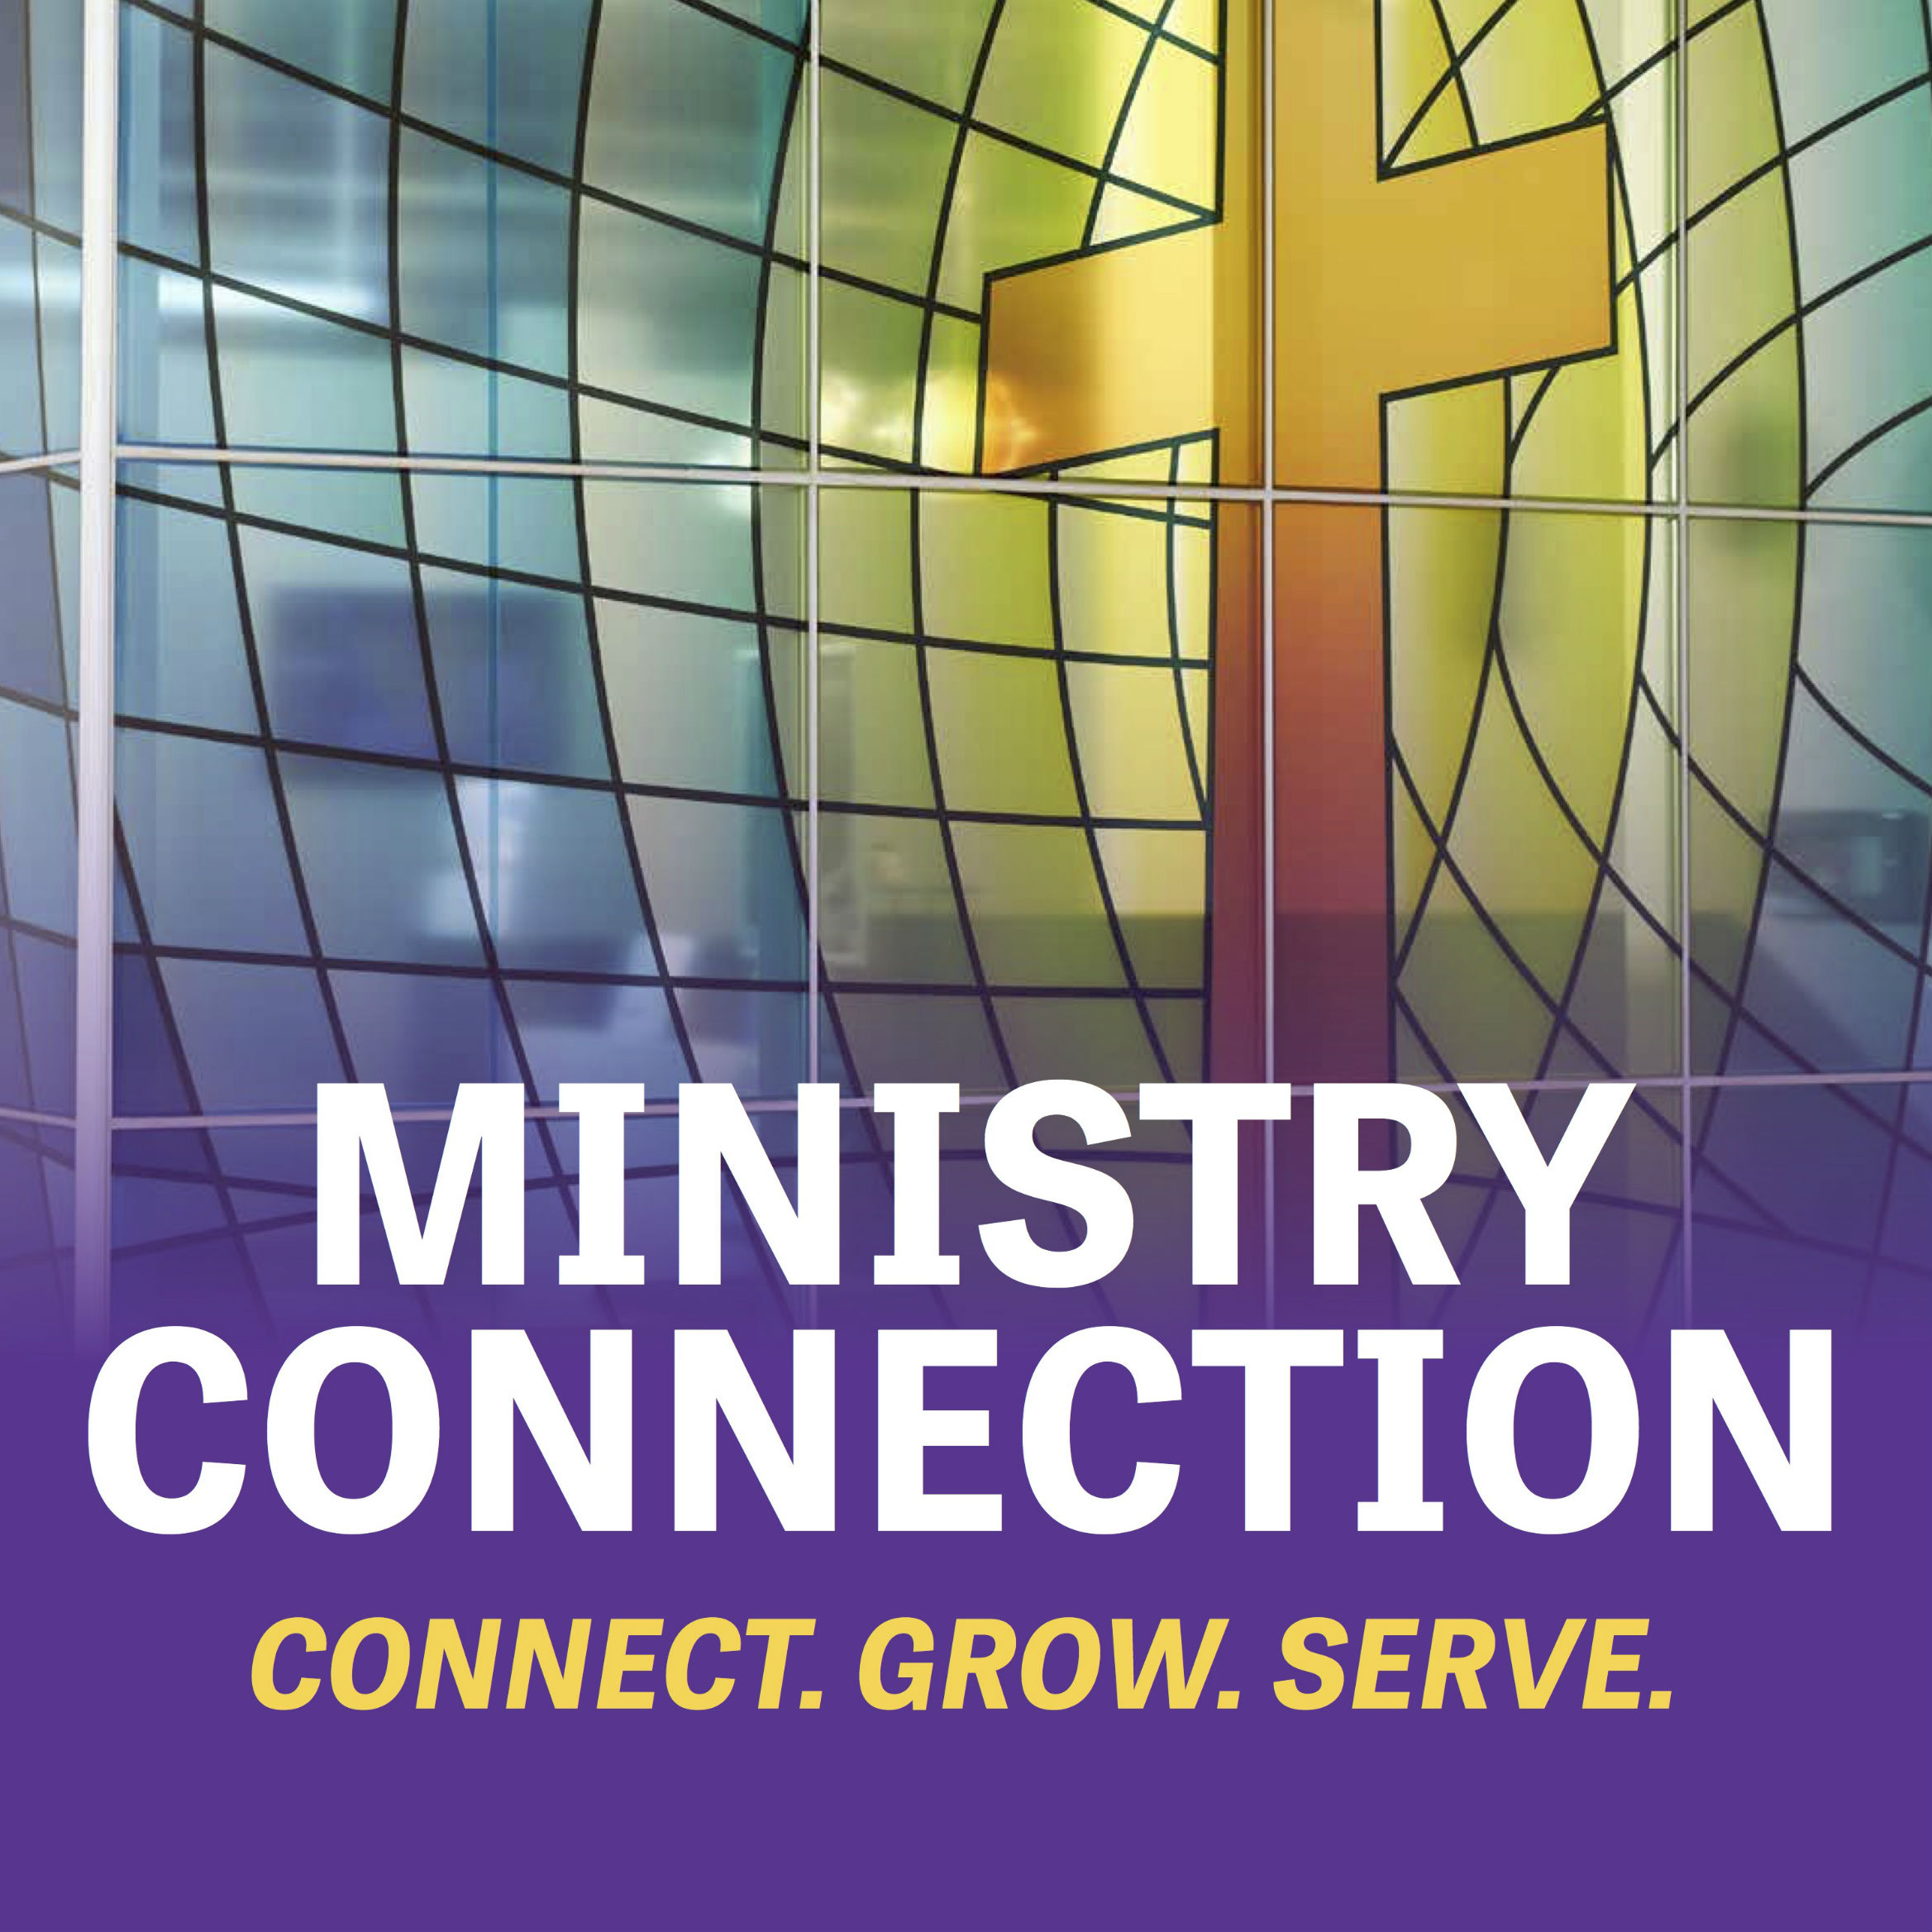 ministry-connection